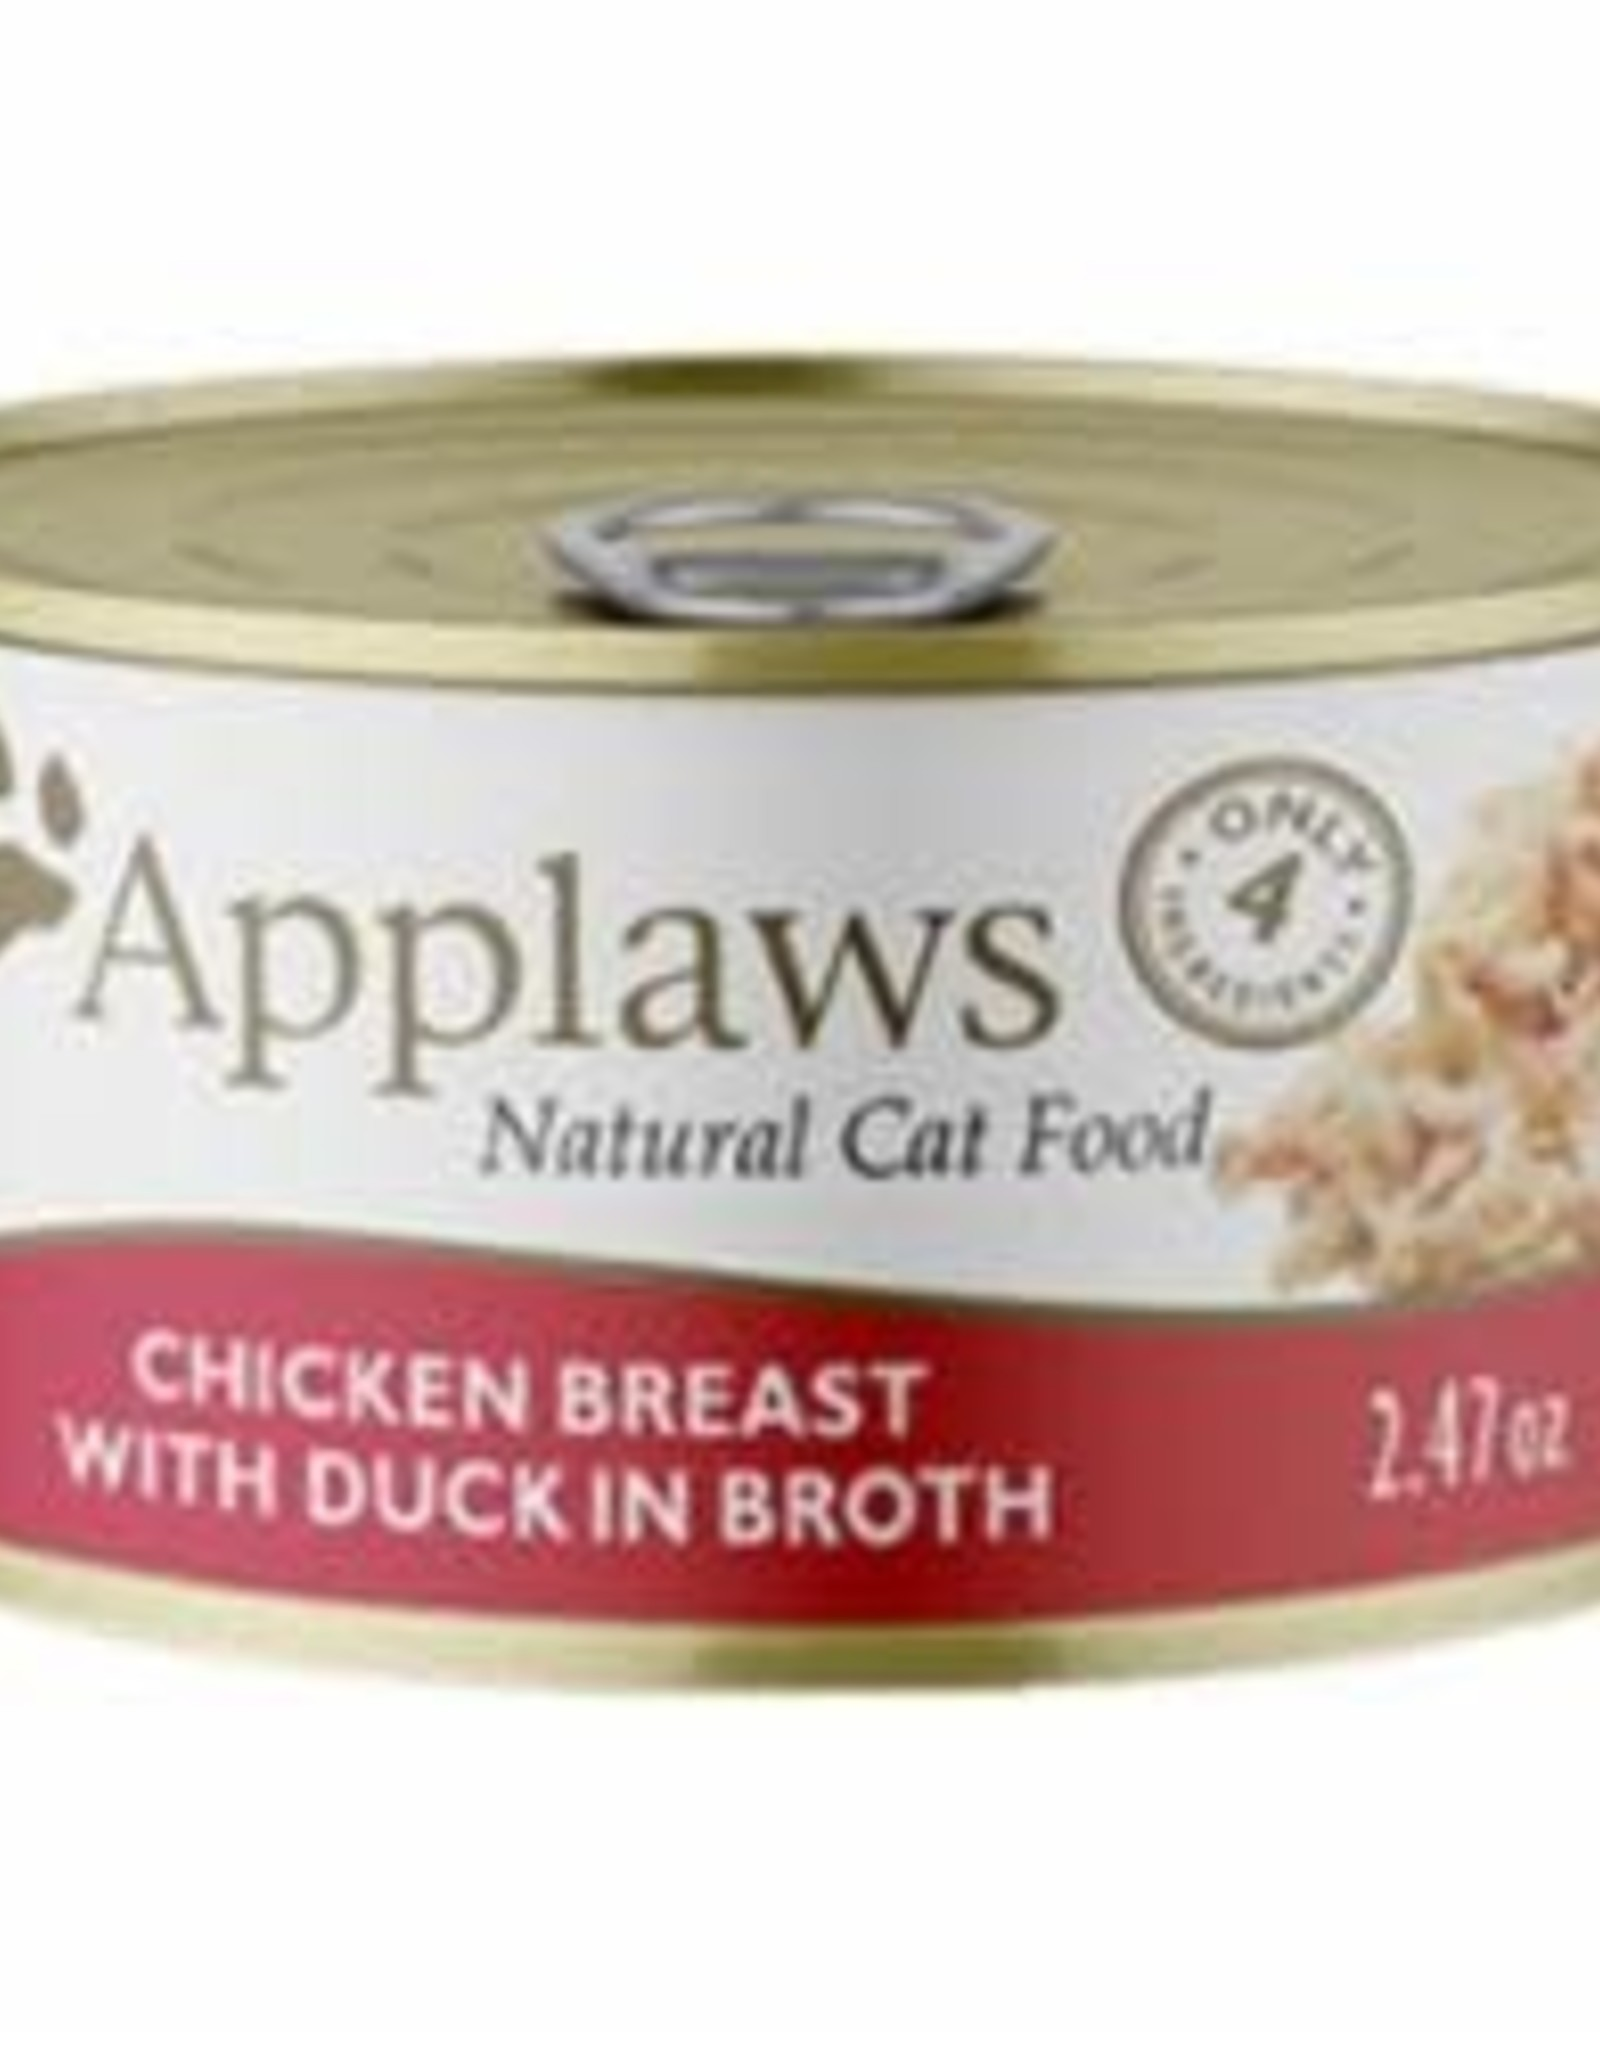 Applaws Applaws Chicken Breast with Duck in Broth 2.47oz